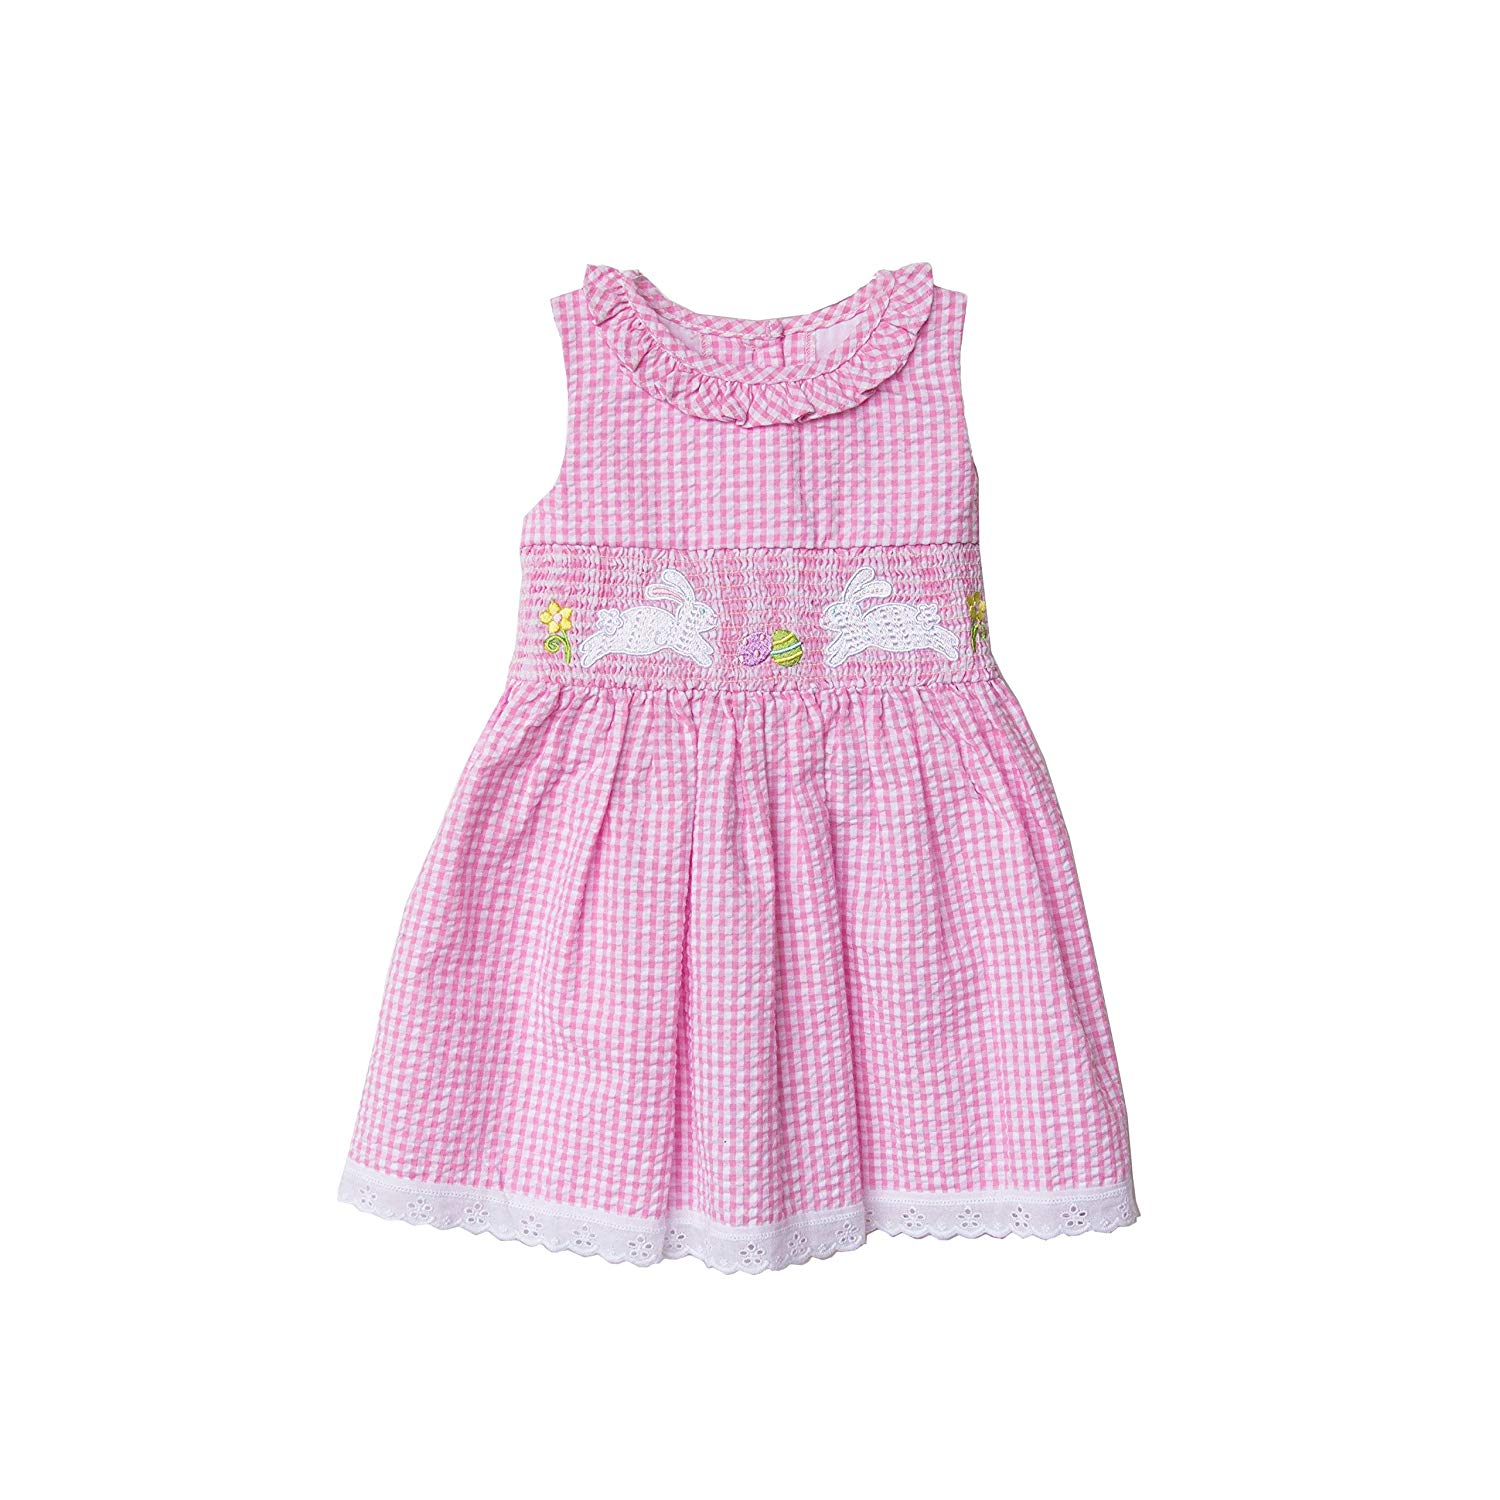 3afff7c09 Get Quotations · Good Lad Toddler Girls Pink Gingham Check Seersucker Bunny Smocked  Dress